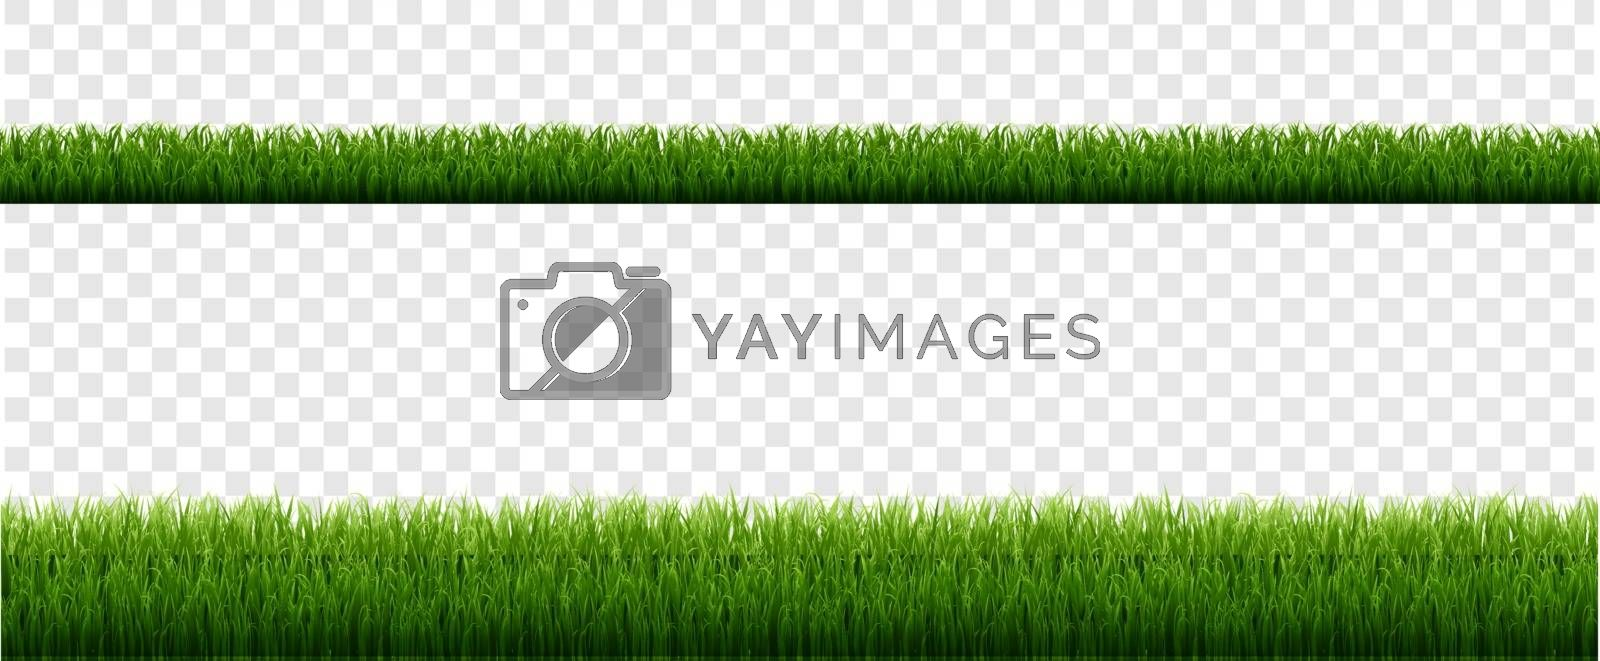 Green Grass Border With Isolated Transparent Background, Vector Illustration